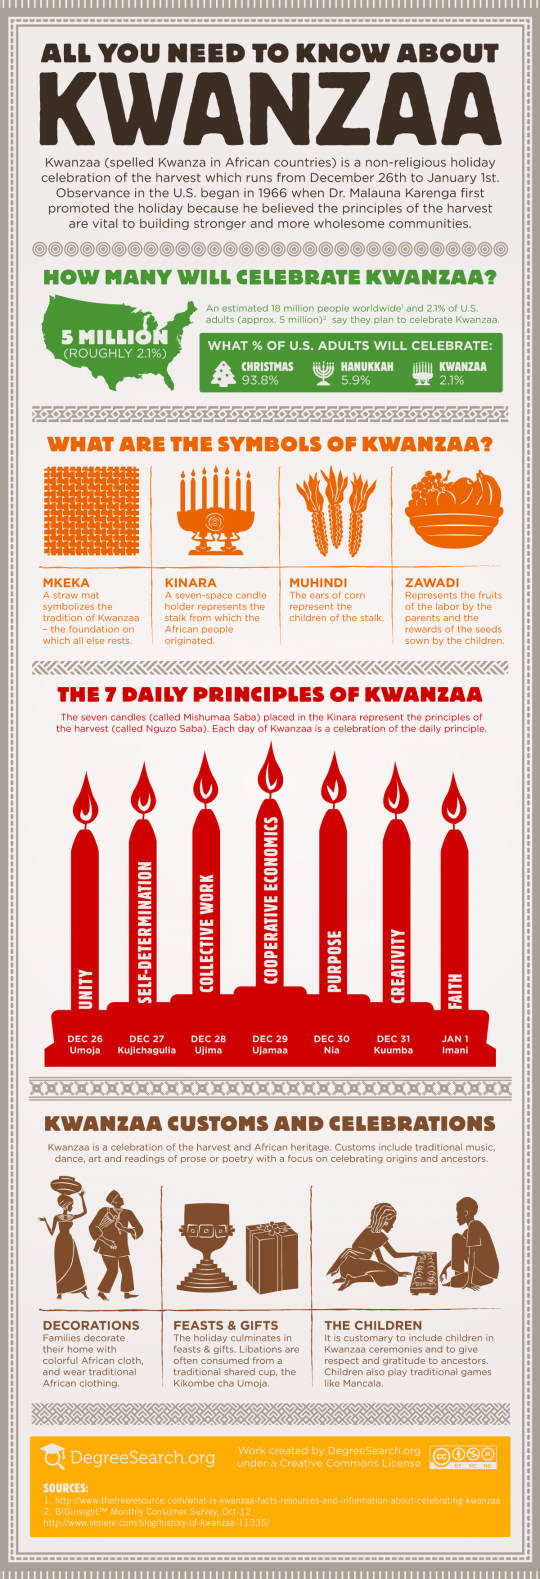 Kwanzaa - All You Need To Know